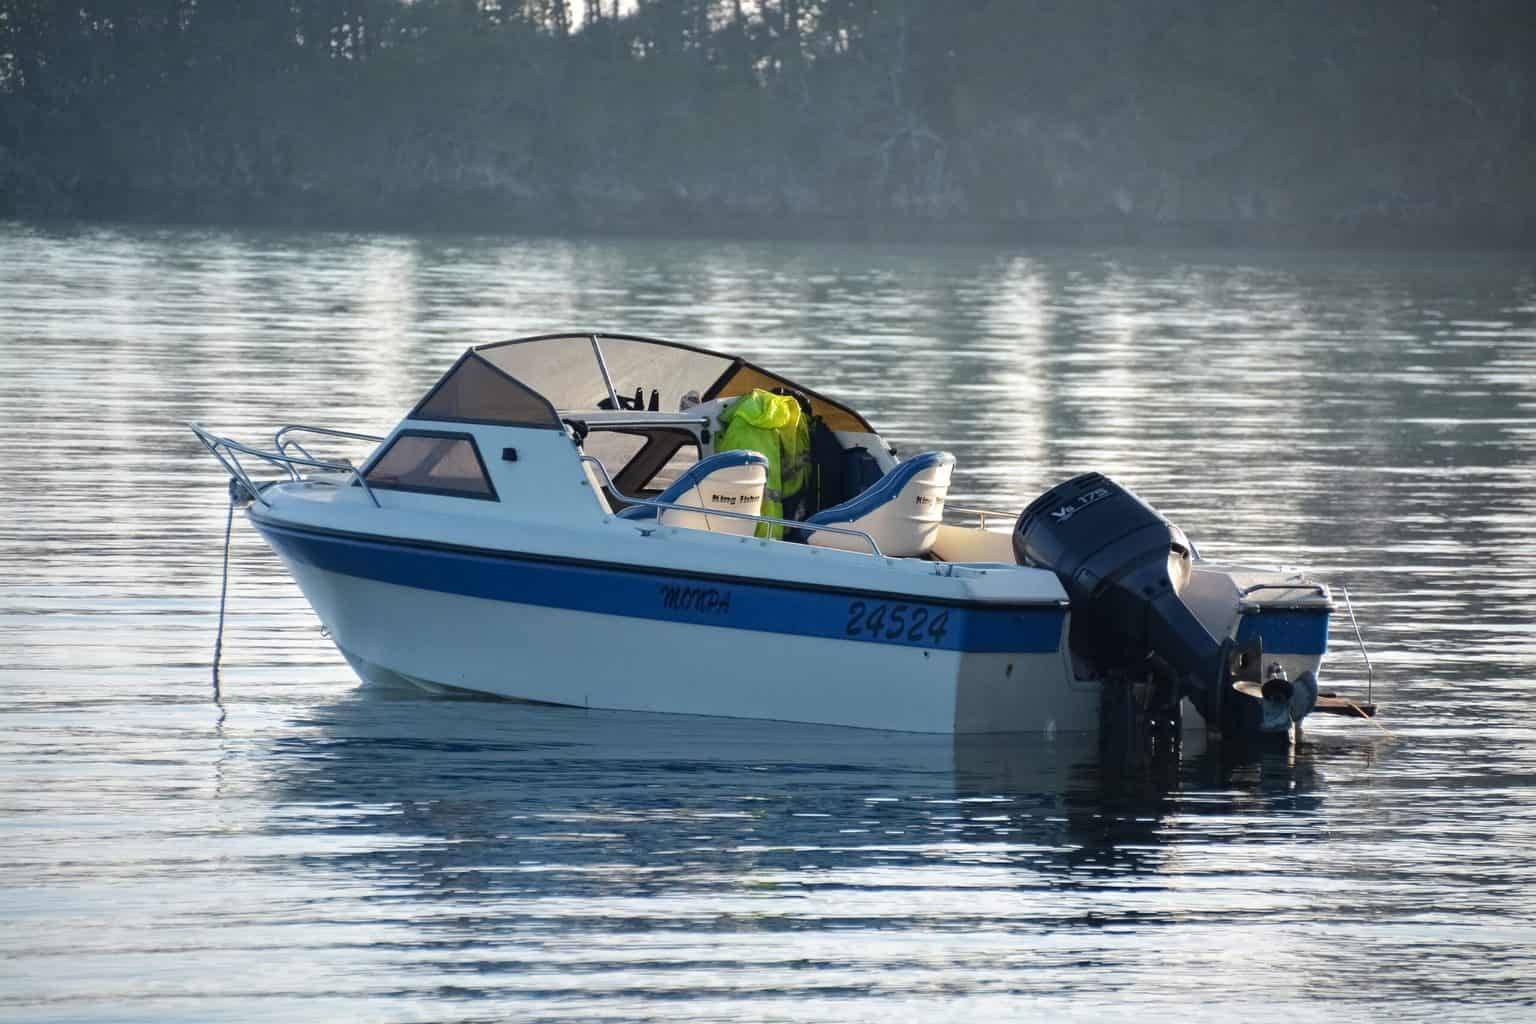 A boat in the middle of the water with a trolling motor